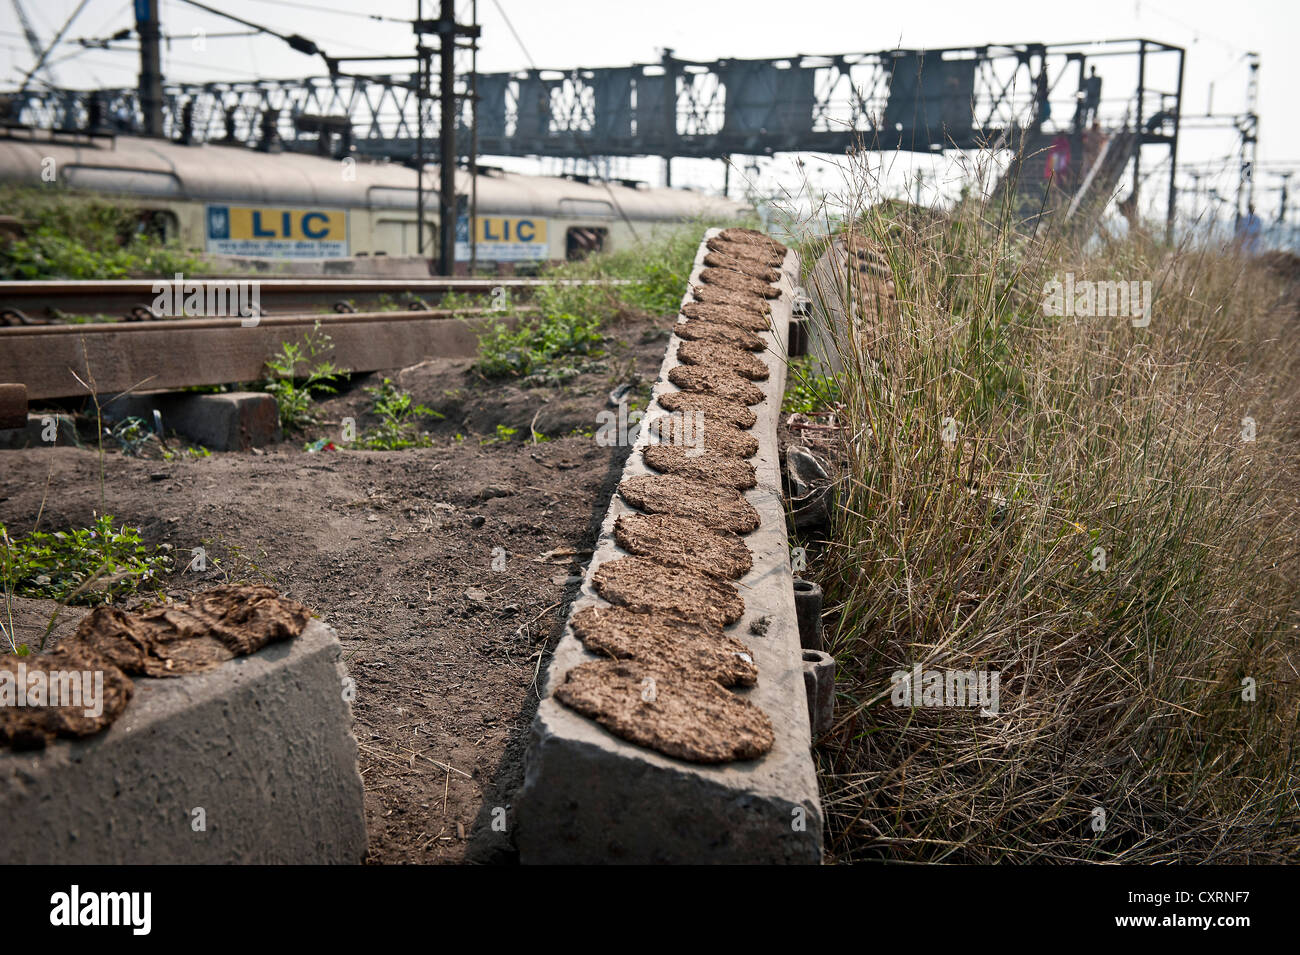 Cow dung laid out for drying in an old railway sleeper, Shibpur district, Haora or Howrah, Kolkata or Calcutta, - Stock Image